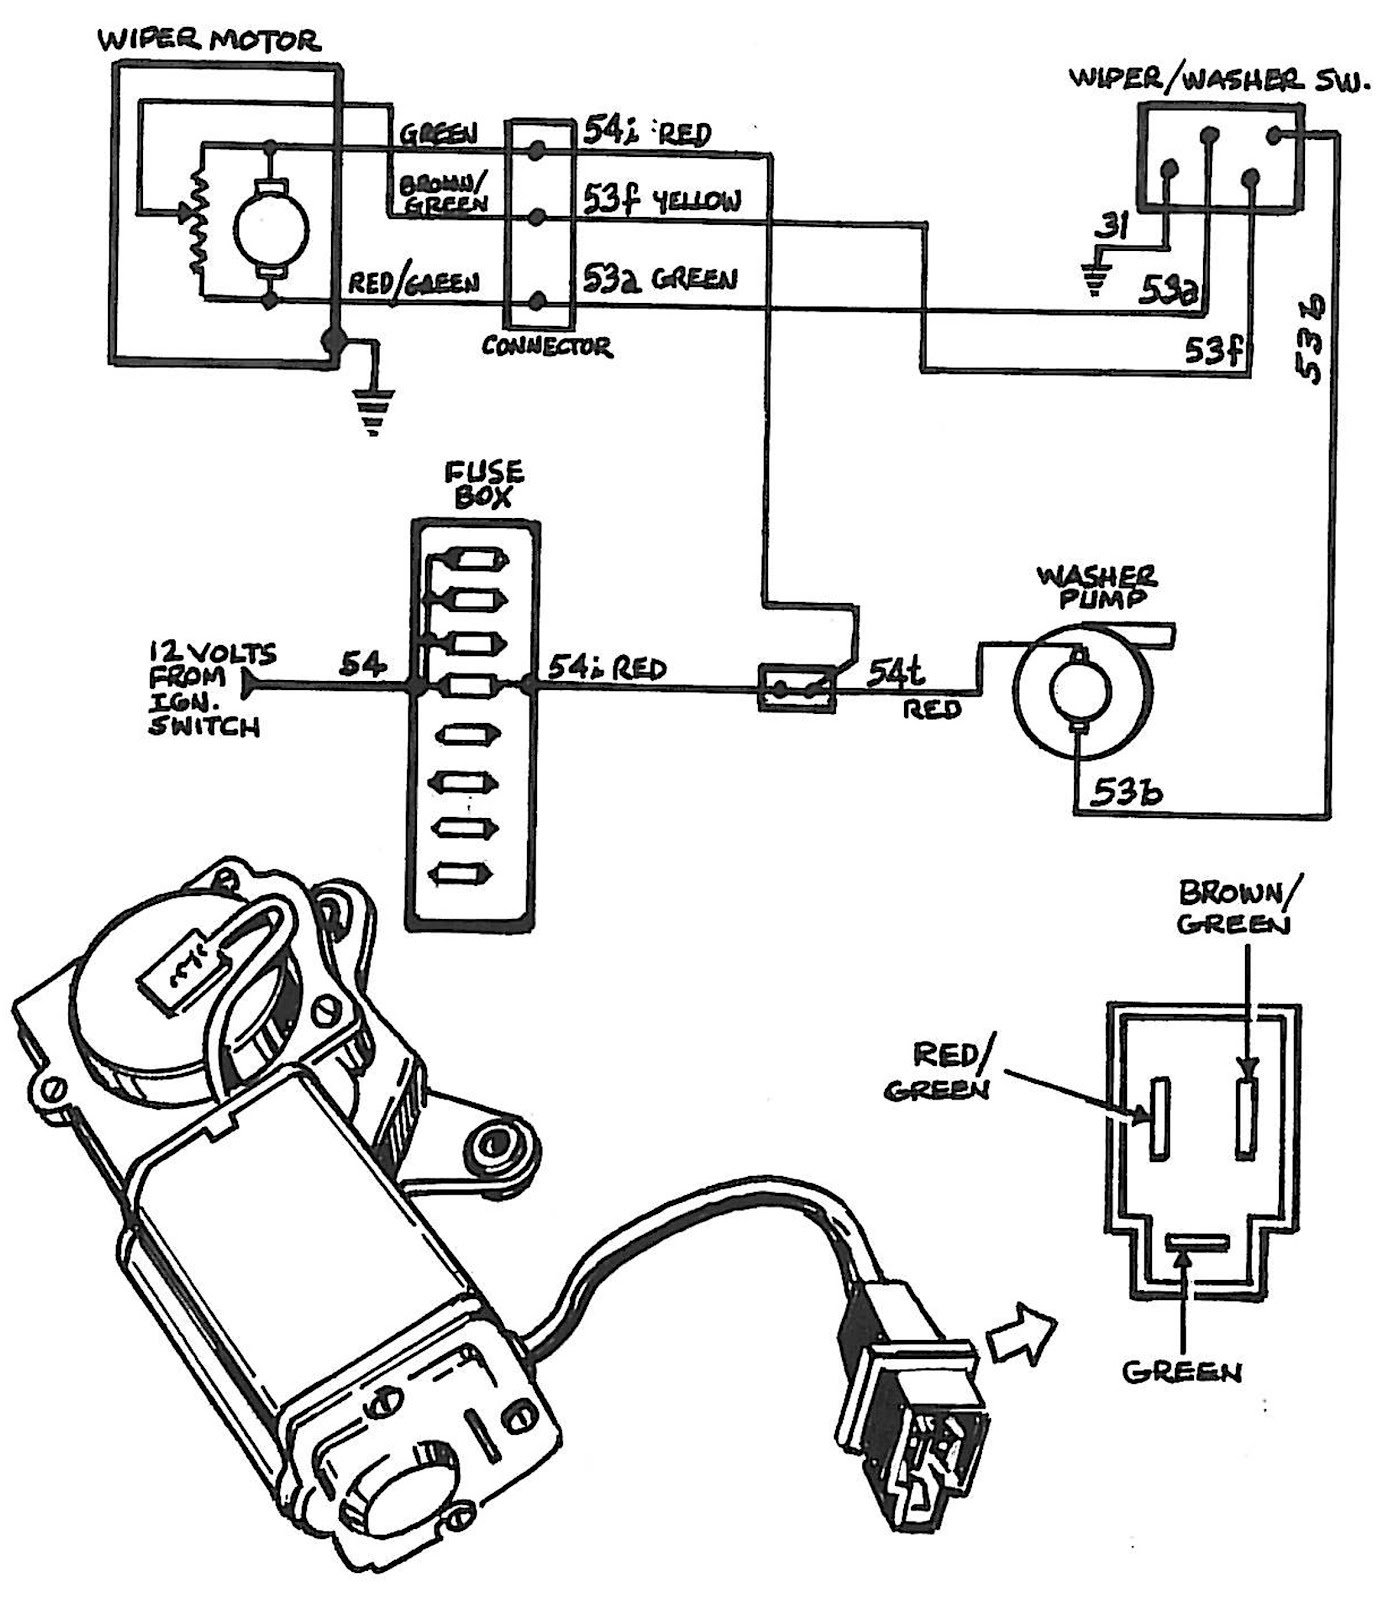 2011 in addition 1979 1989 Chevrolet Fusebox Diagram furthermore Saturn Wiper Motor Wiring Diagram in addition Dodge Ramcharger Wiring Diagrams also RepairGuideContent. on 1985 c10 wiring diagram